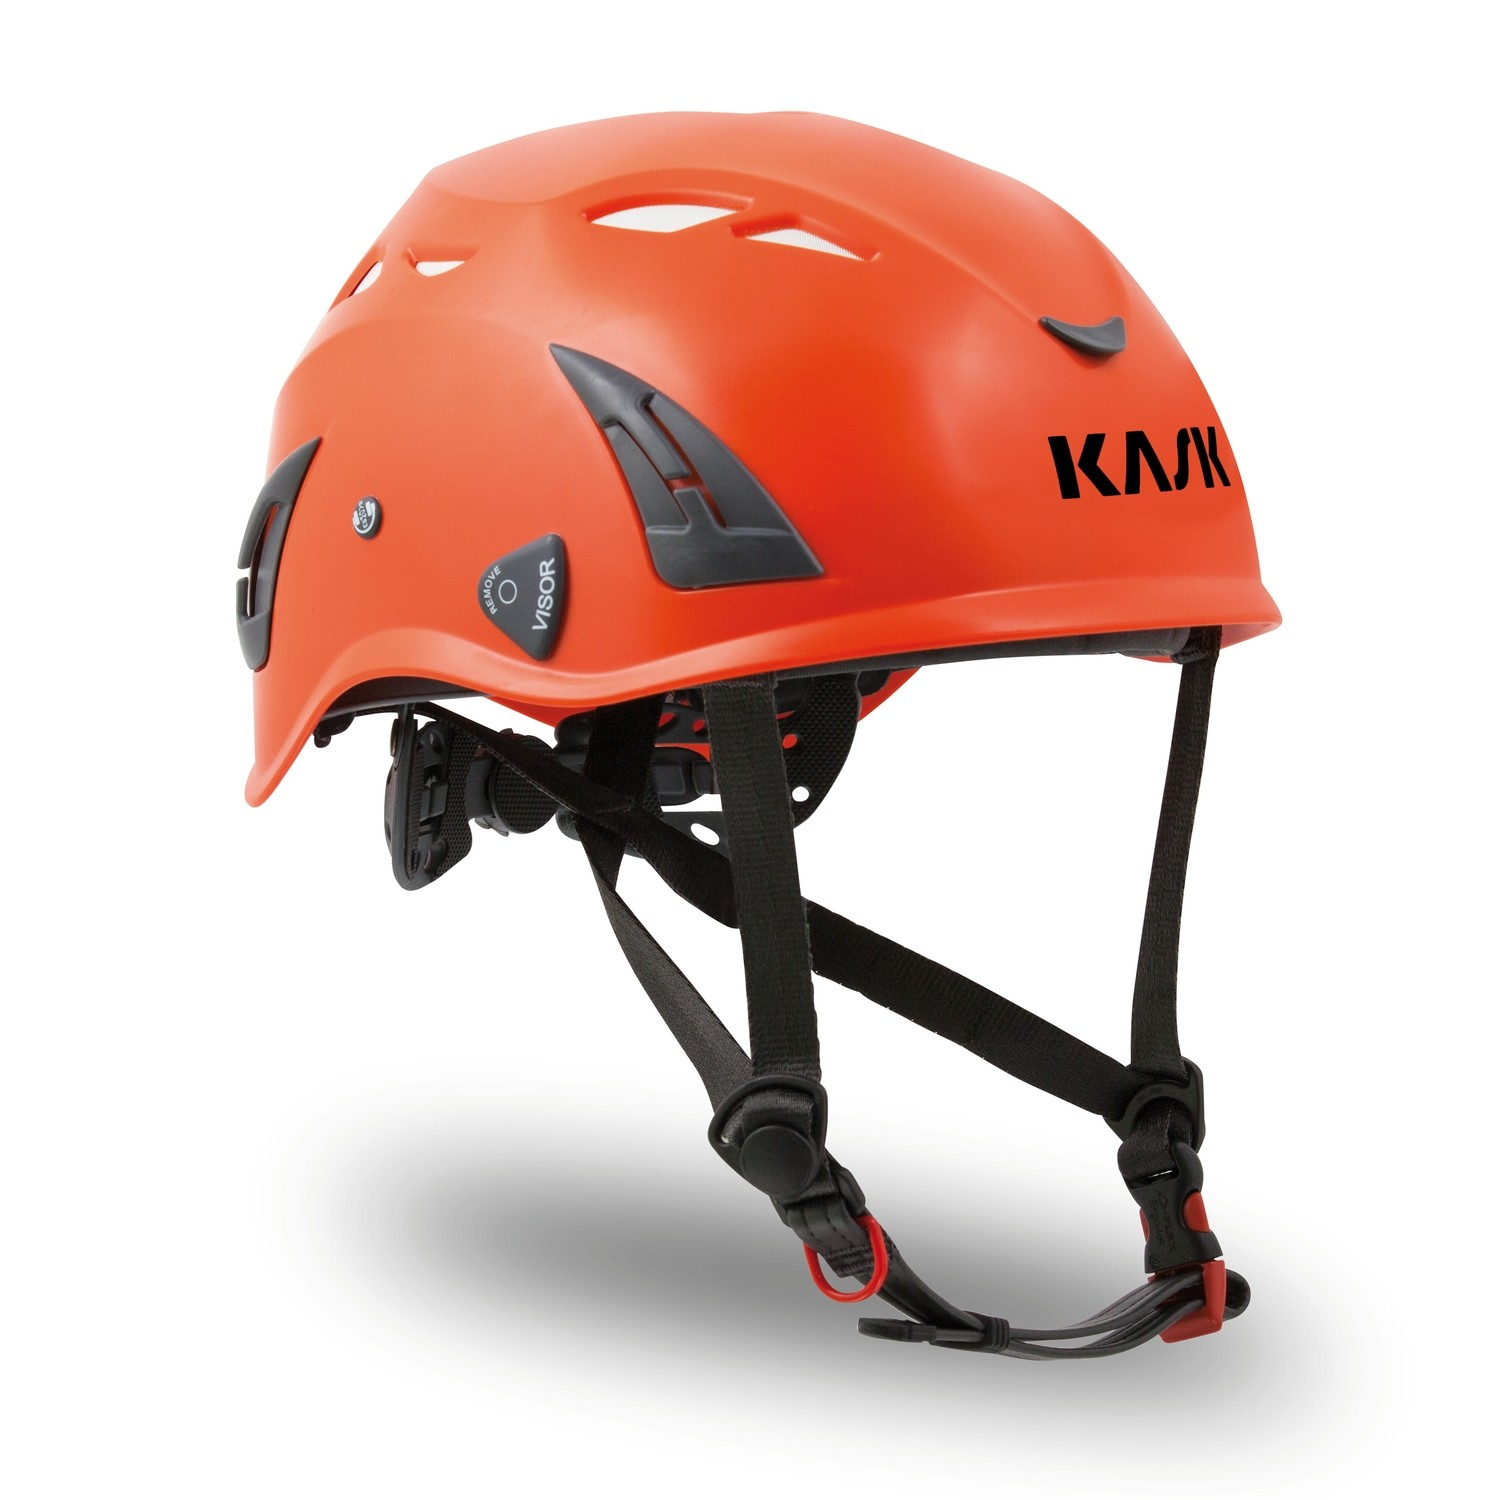 Kask Superplasma Helmet — Orange